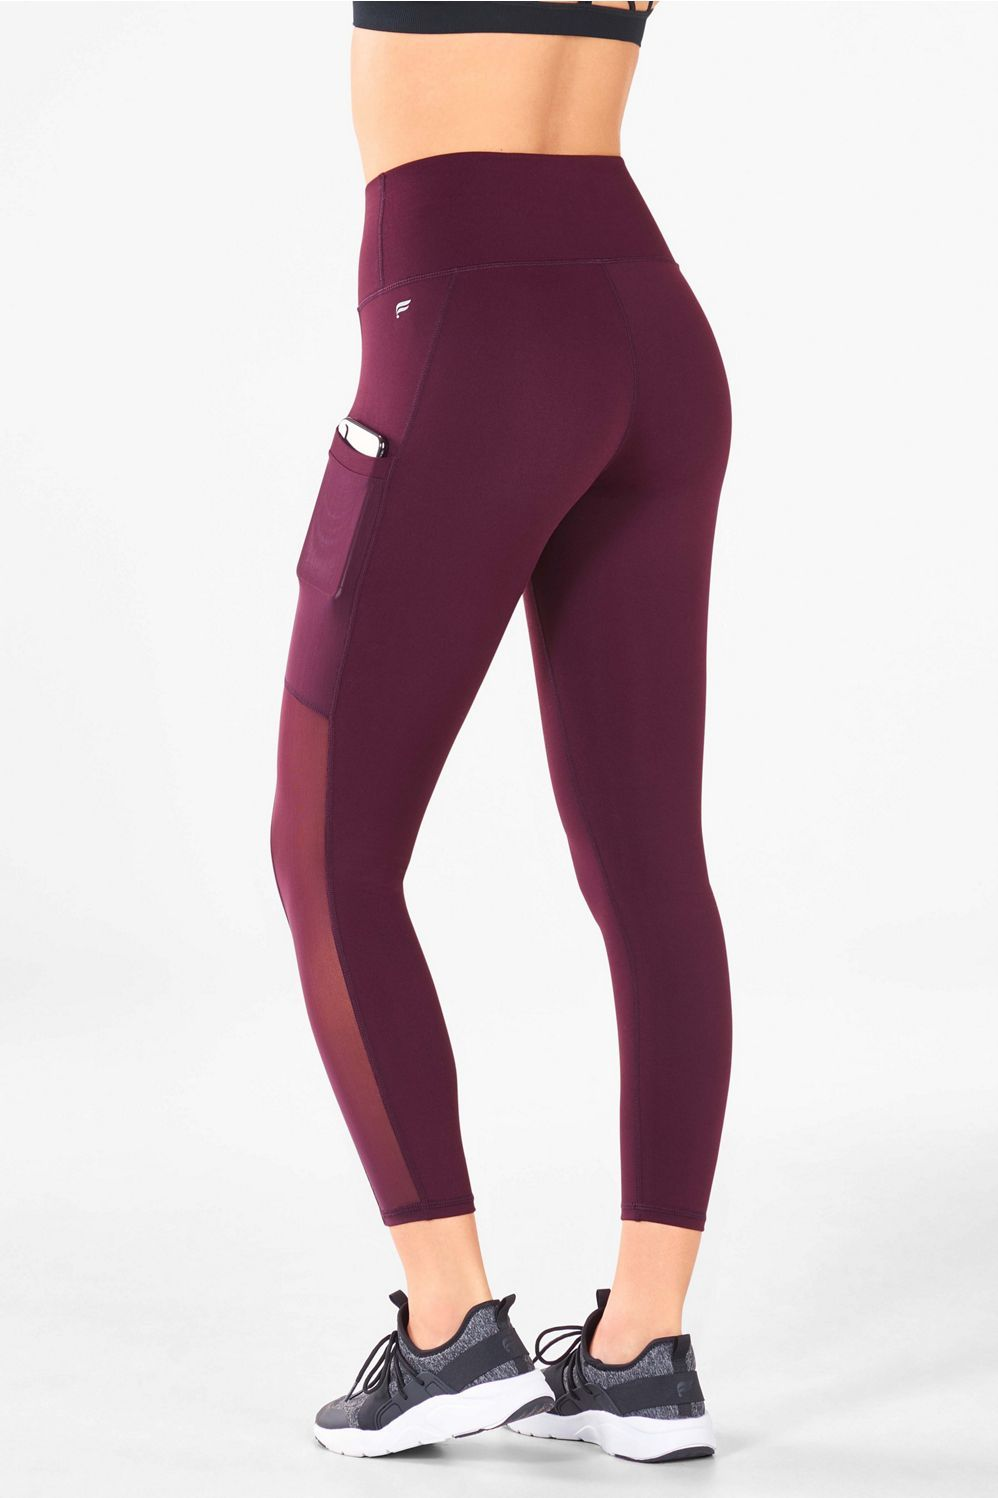 1f92c710c63df Be insta-ready at all times with capris that let you hold your phone when  you're on the go. They're designed with a slimming high-rise waistband, ...